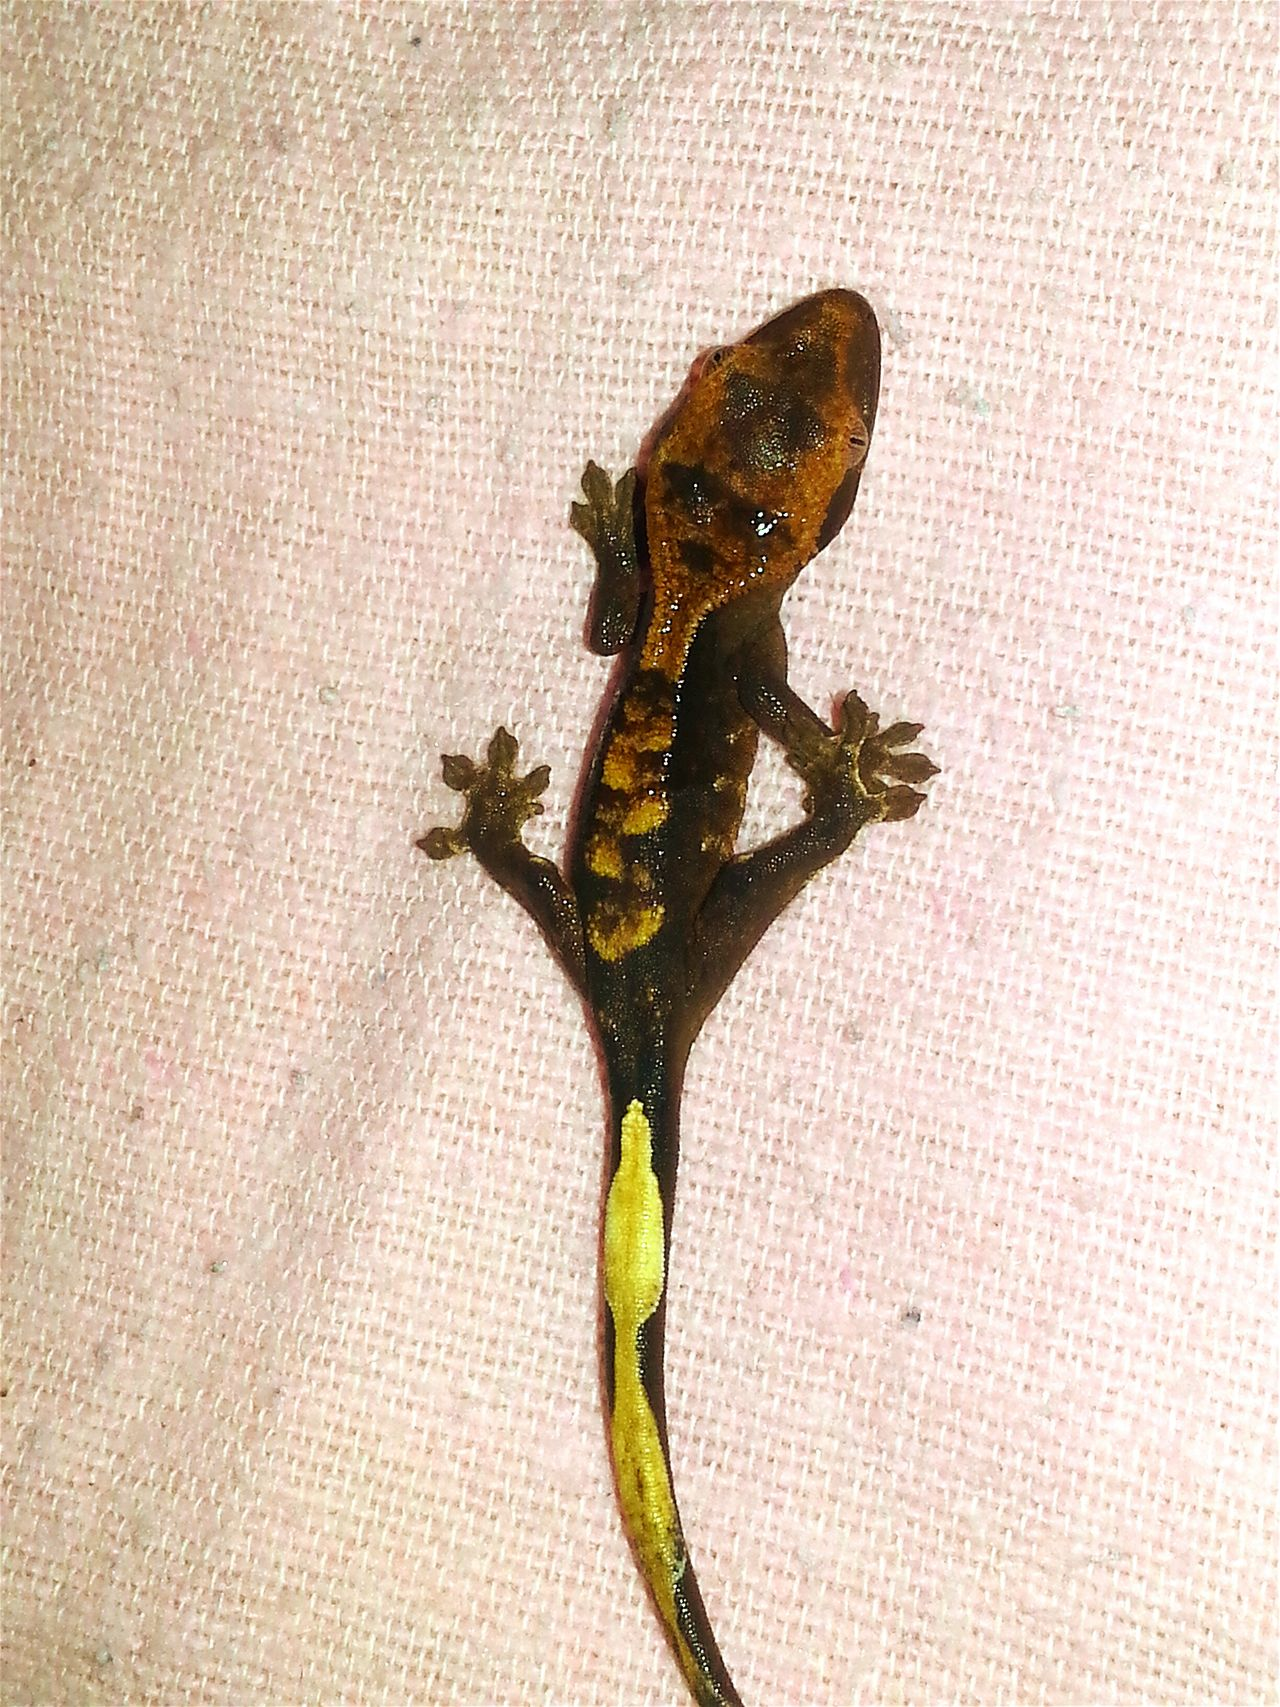 The second crested gecko baby of today hatched ca.6:30 pm. Day Close-up Evening Time Surprise! Jurassic World Baby Photography Exotic Creatures New Life & New Hope Babies♥ New Life.... Baby Animal Jurassic World Of Dino's God's Beauty Exotic Animals Wonderful Nature Special_shots New Life Starts Now ♥ Real Life Born To Be Beautiful Crested Especially New Life New Born Hatched Egg Animal Themes Special Shot